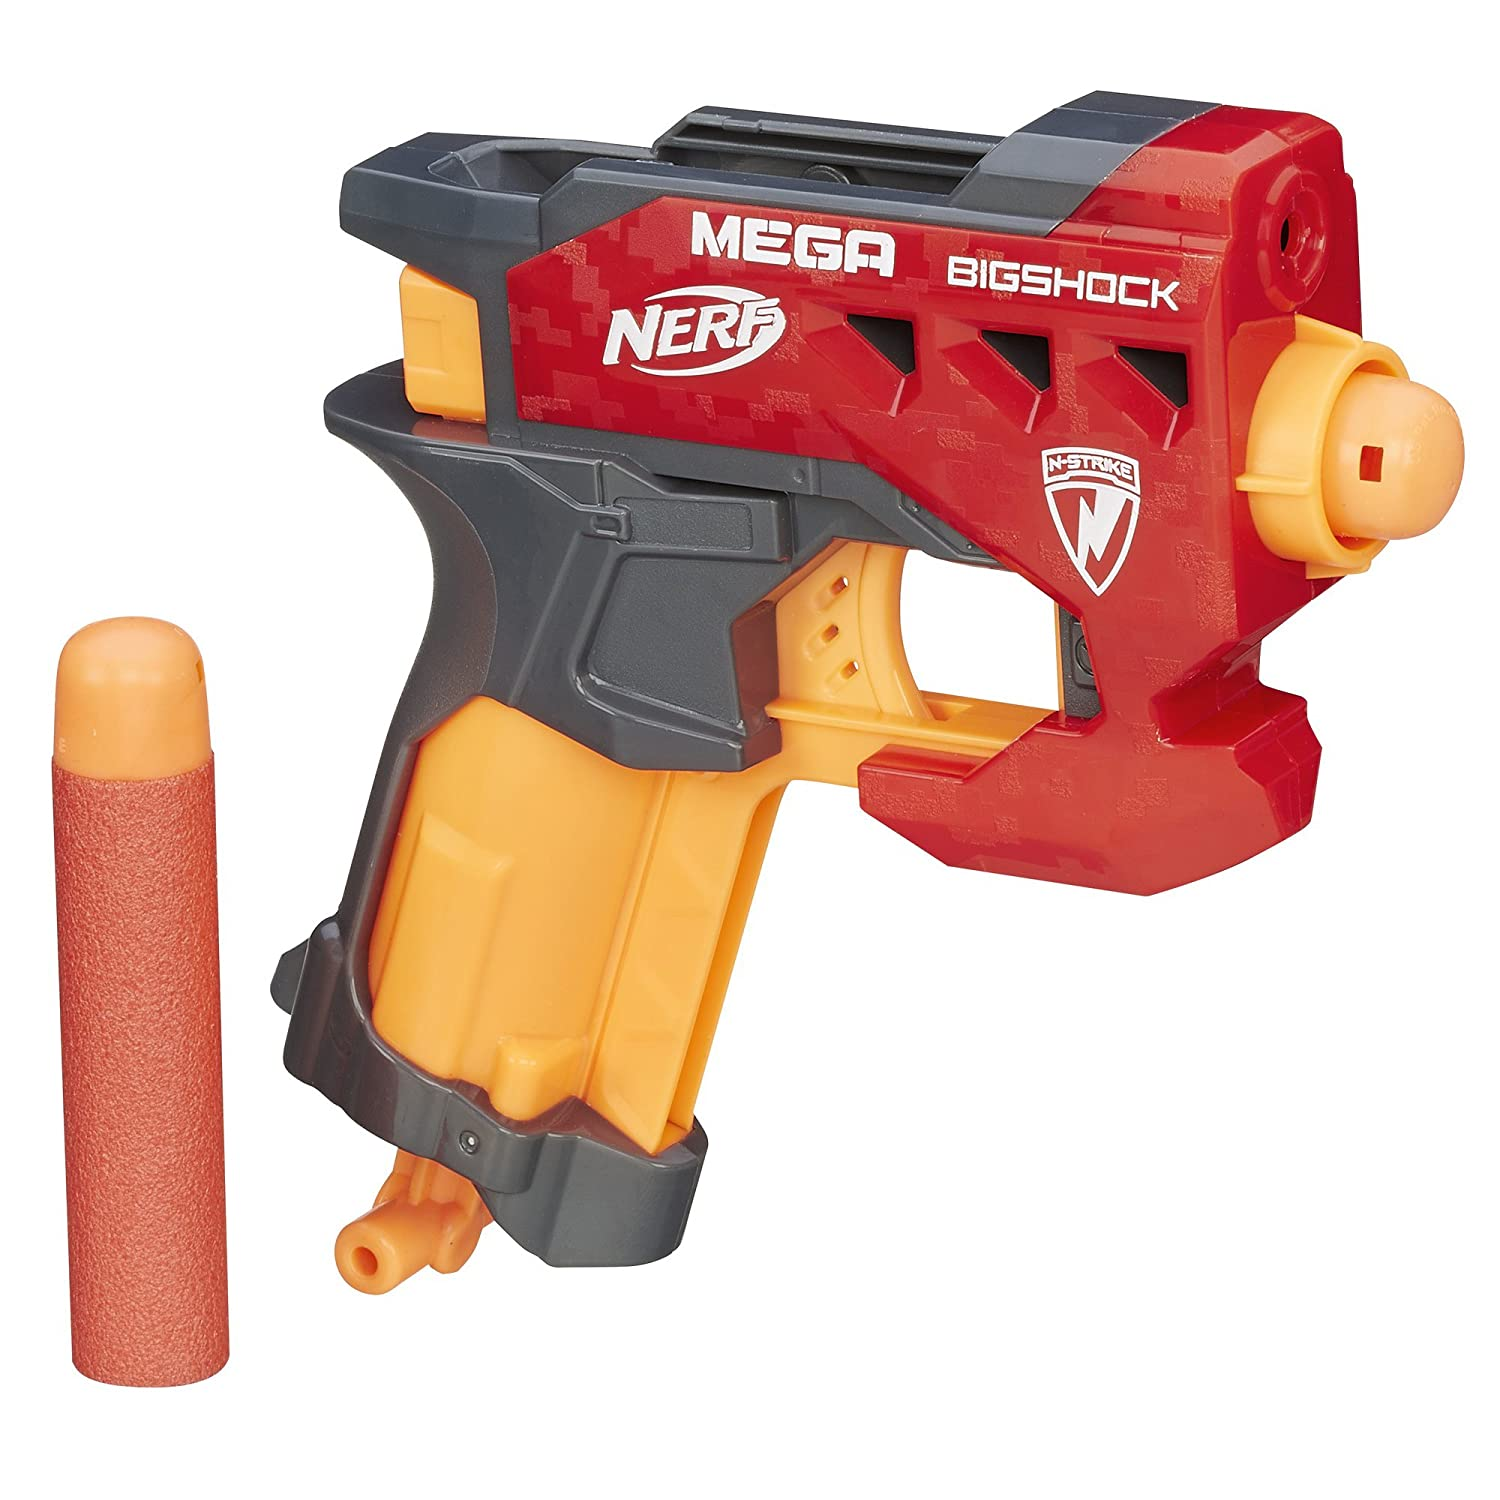 Nerf N-Strike Mega blasters feature bigger darts engineered to fire farther  than ever. Stretch the limits of blaster performance in the biggest Nerf  battle ...